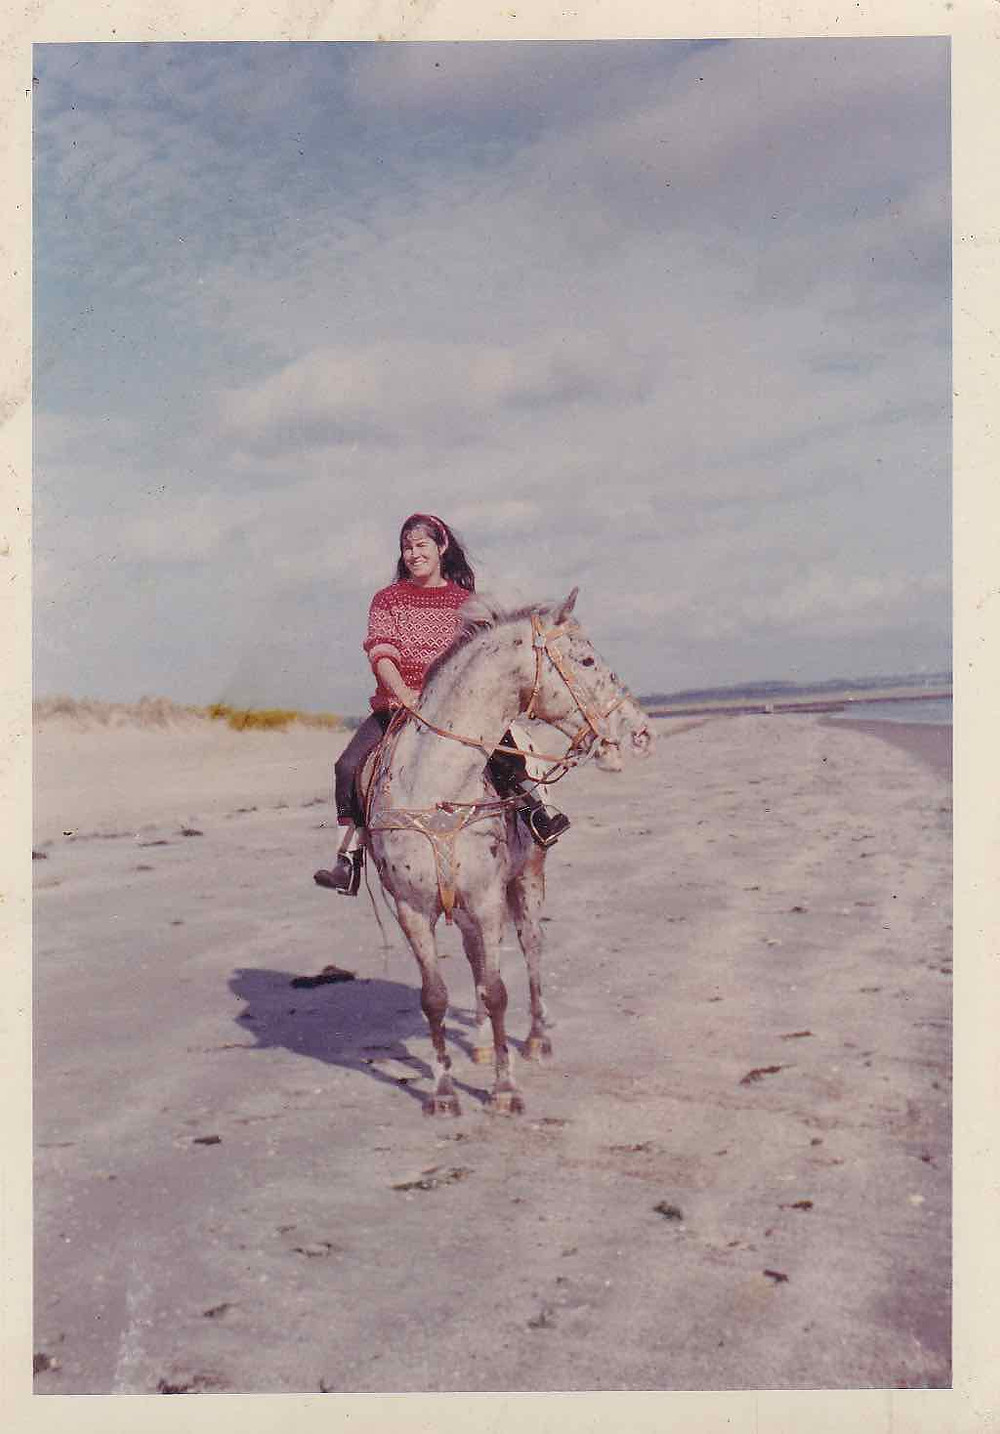 Juanita Casey on Texas riding on Mornington Strand in Ireland. One of her short stories has just been republished.